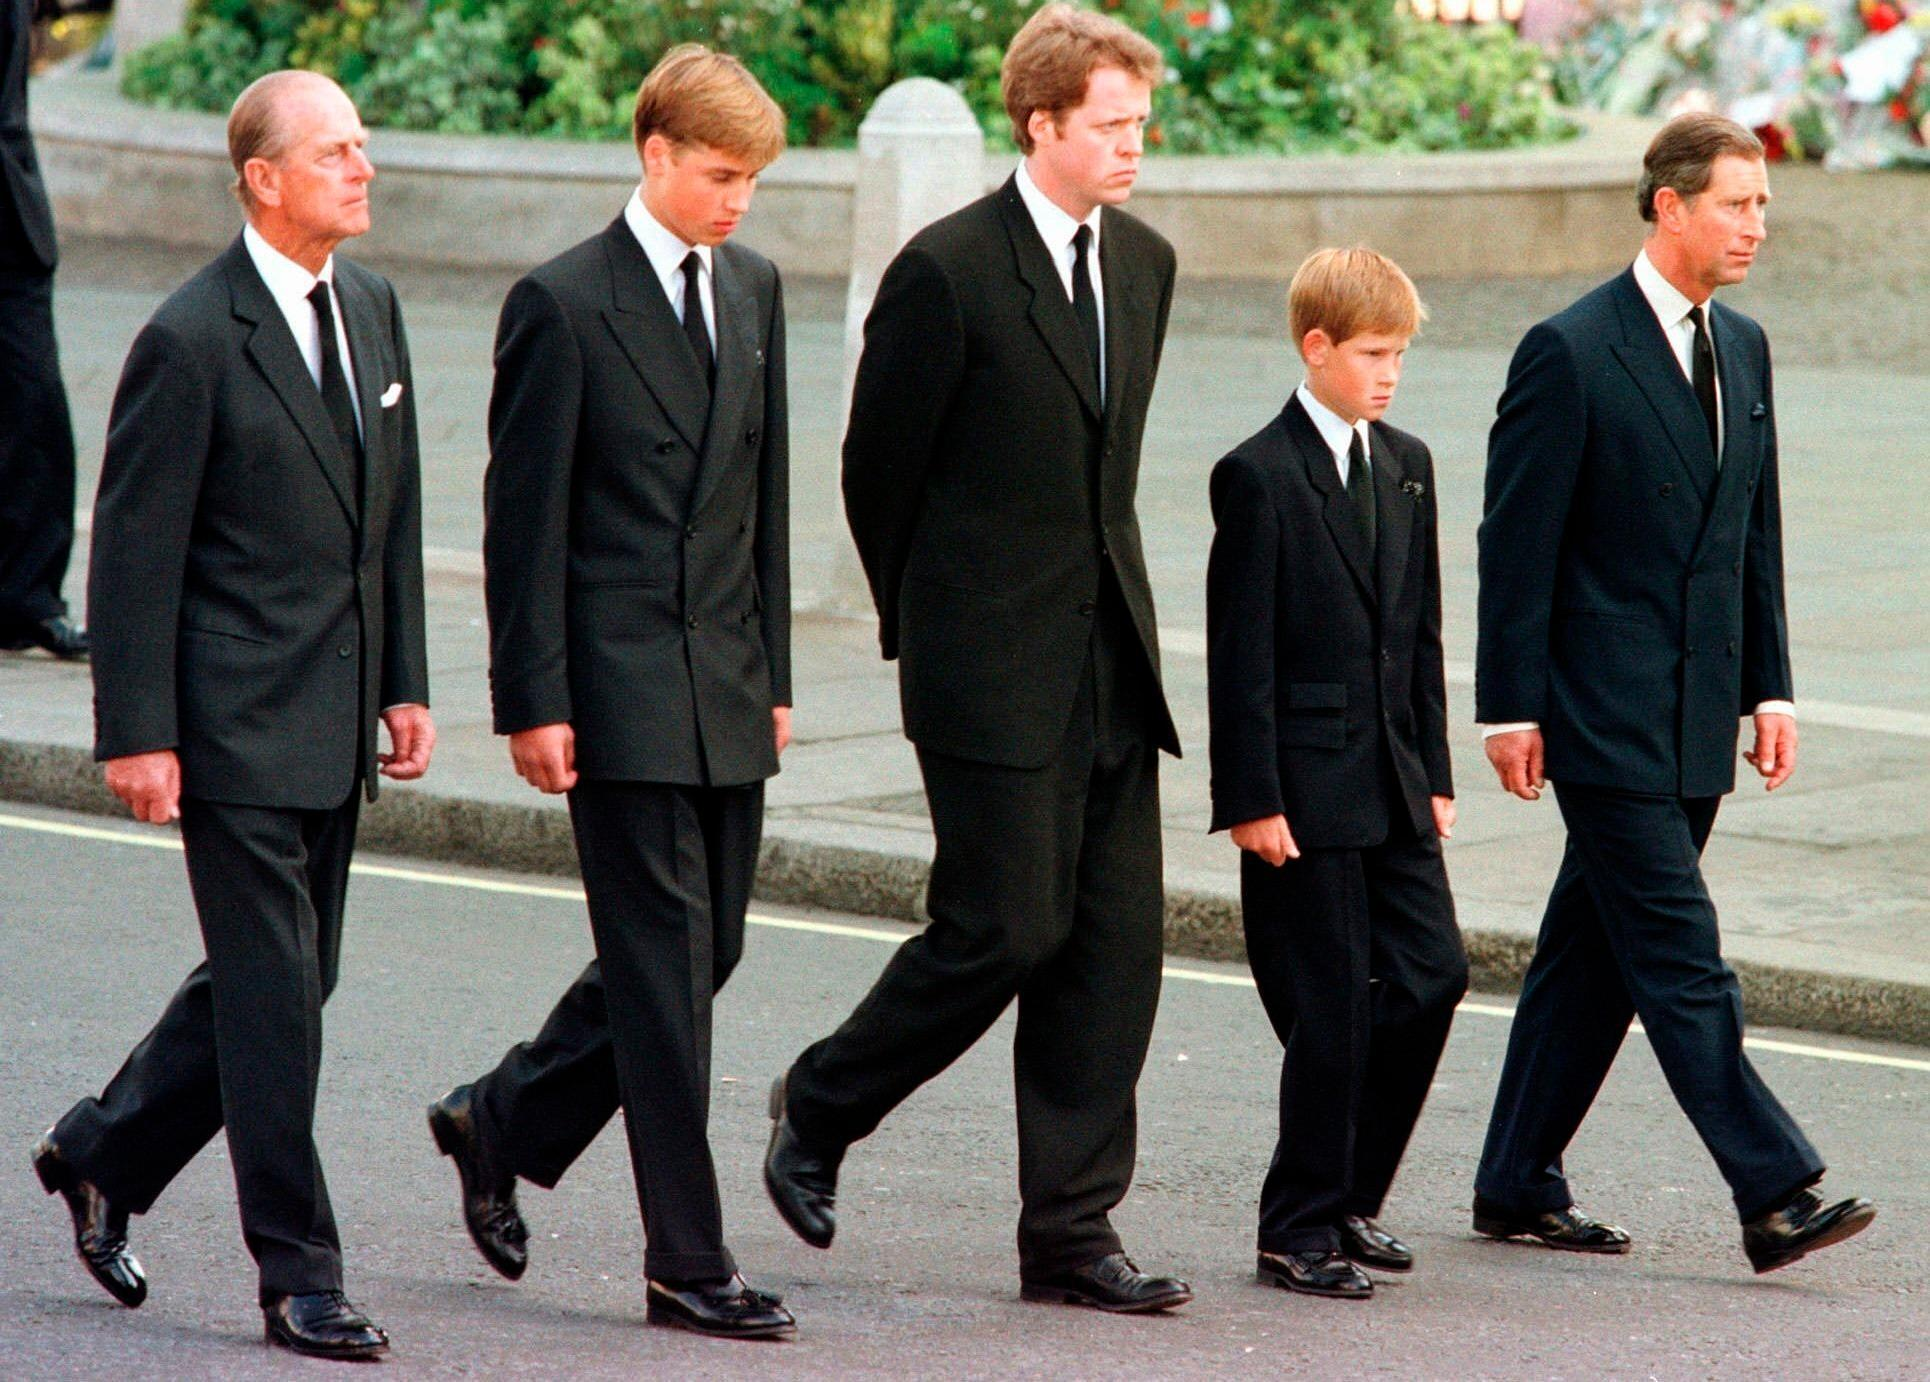 In this September 6, 1997 file photo, from left, Prince Philip, Prince William, Earl Spencer, Prince Harry and Prince Charles walk outside Westminster Abbey during the funeral procession for Diana, Princess of Wales.